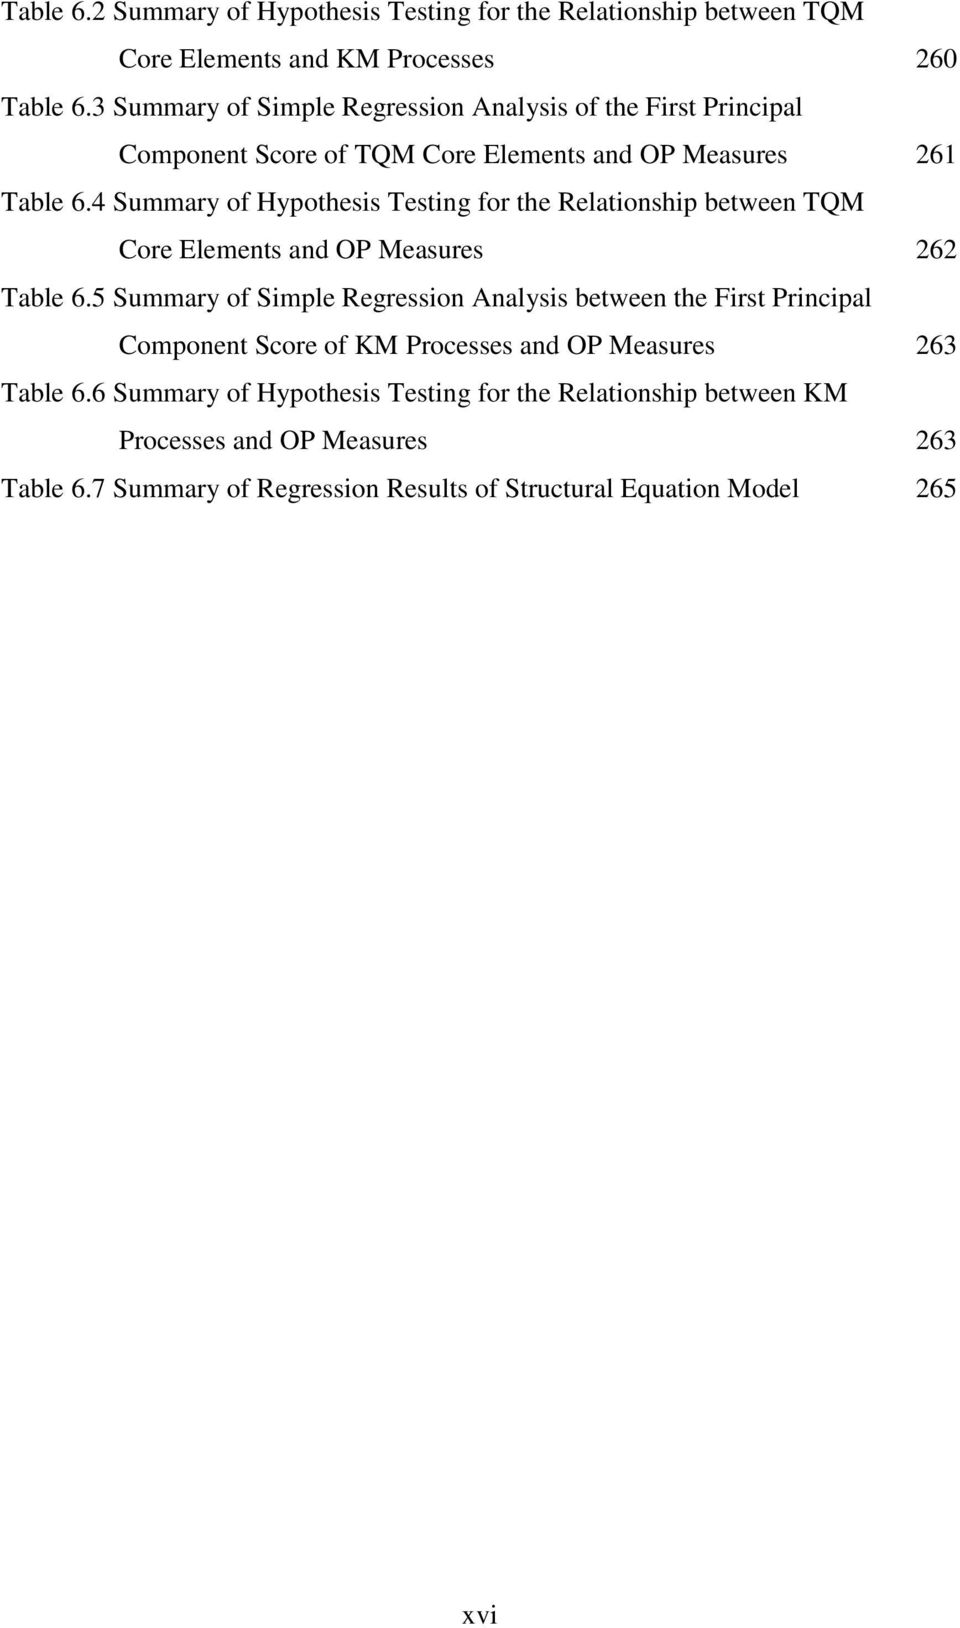 The impact of total quality management on knowledge management and 4 summary of hypothesis testing for the relationship between tqm core elements and op measures 262 ccuart Gallery